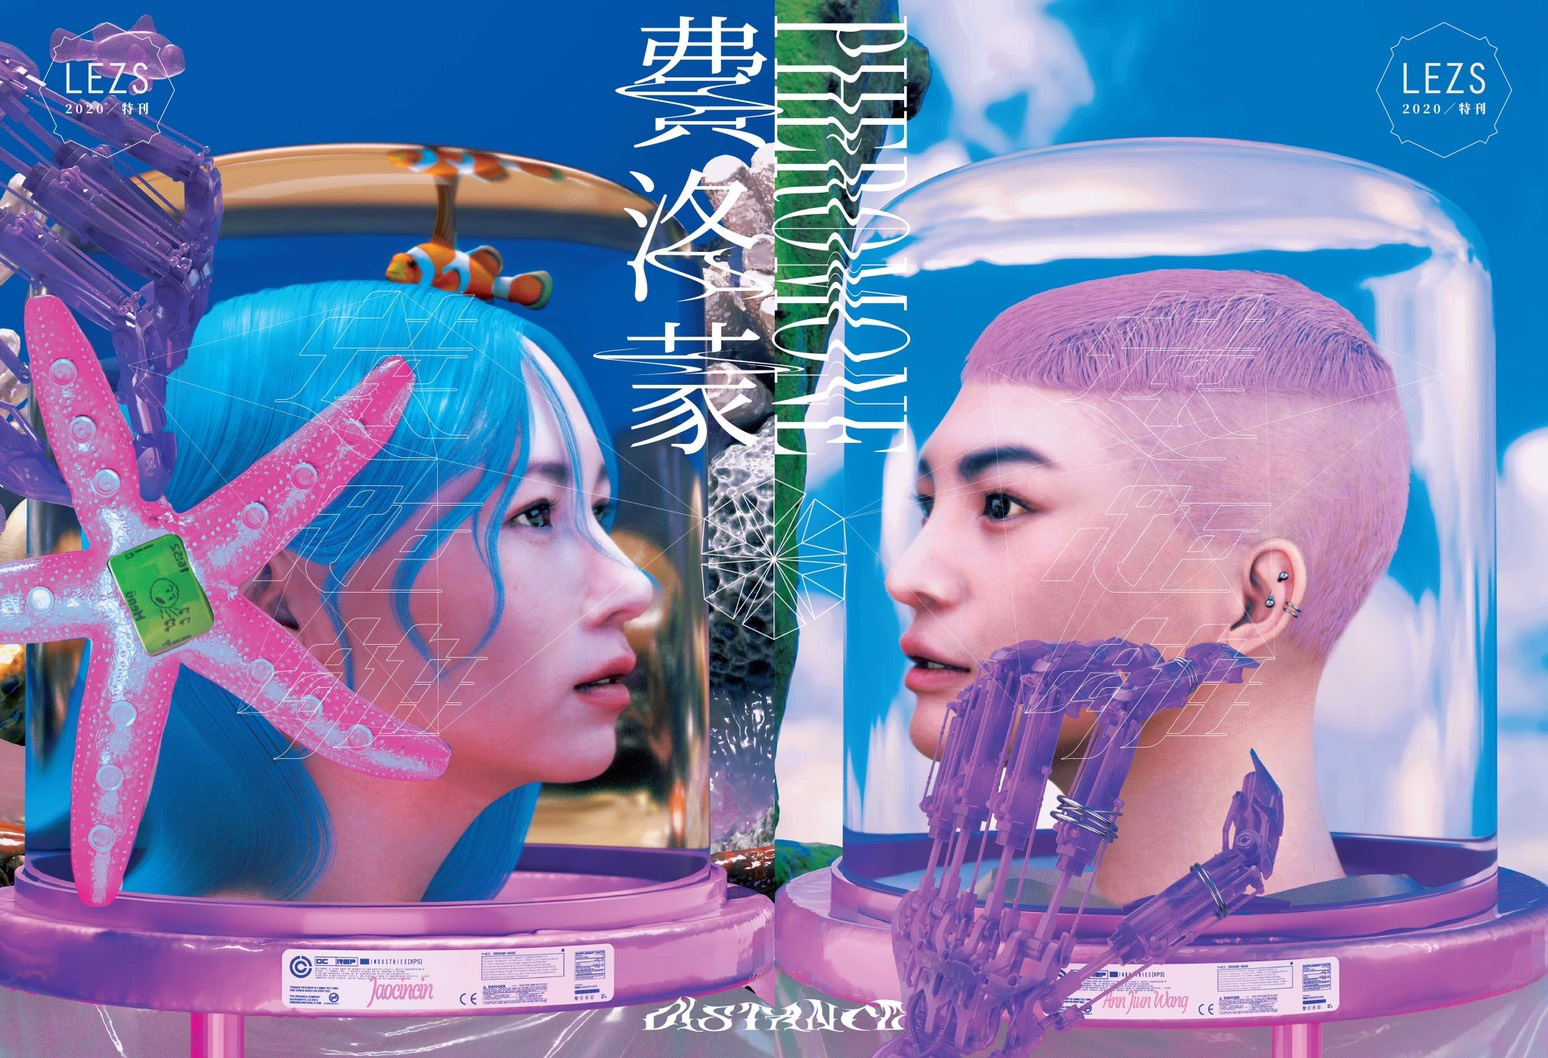 Pheromone─Distance Brings Lesbian a New Sensory Experience, Gathering Several Female Asian Artists t